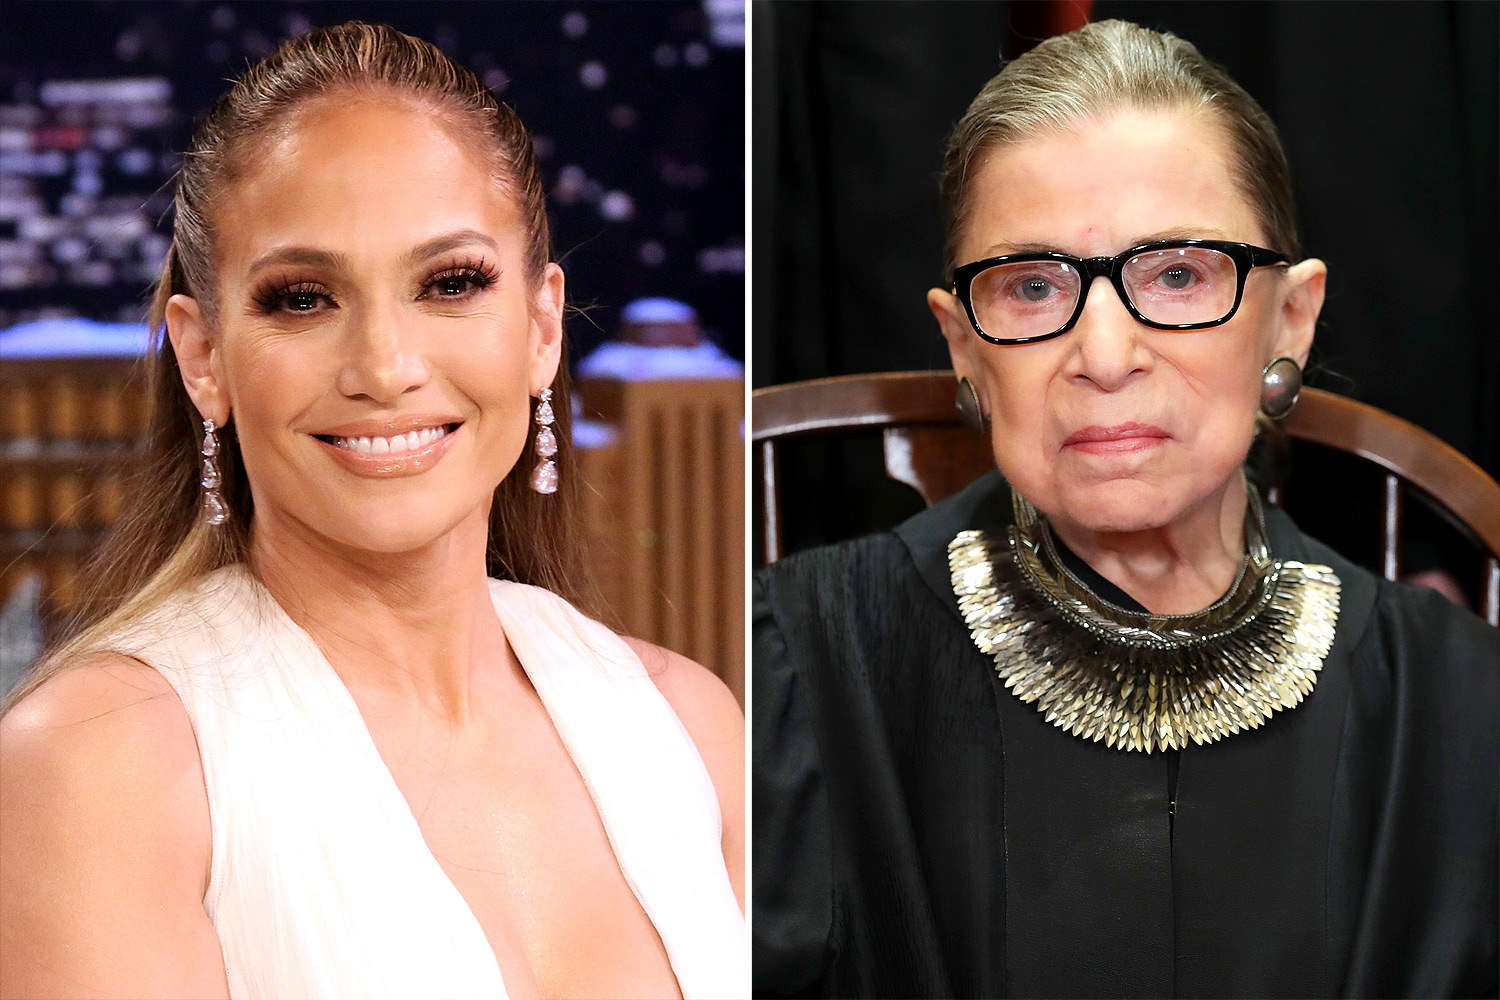 Jennifer Lopez Once Asked Ruth Bader Ginsburg for Marriage Tips: Here Are Her Words of Wisdom